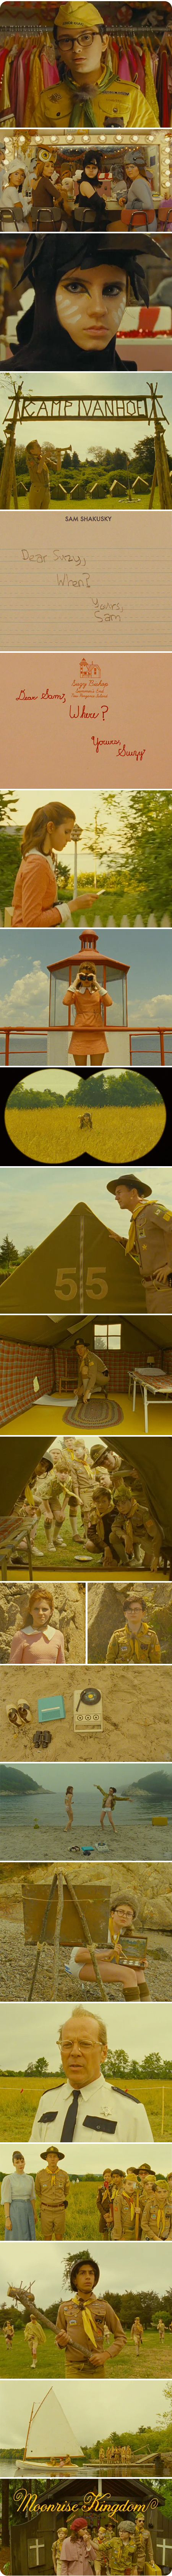 ps. As I said, one of my favorite things about any Wes Anderson film is the typography – and this time is no different. The script for Moonrise Kingdom is perfect. Thanks to a tweet from Tina Roth Eisenberg of @swissmiss, I found out that it was designed by Brooklyn based letterer/illustrator Jessica Hische. Lovely ♥